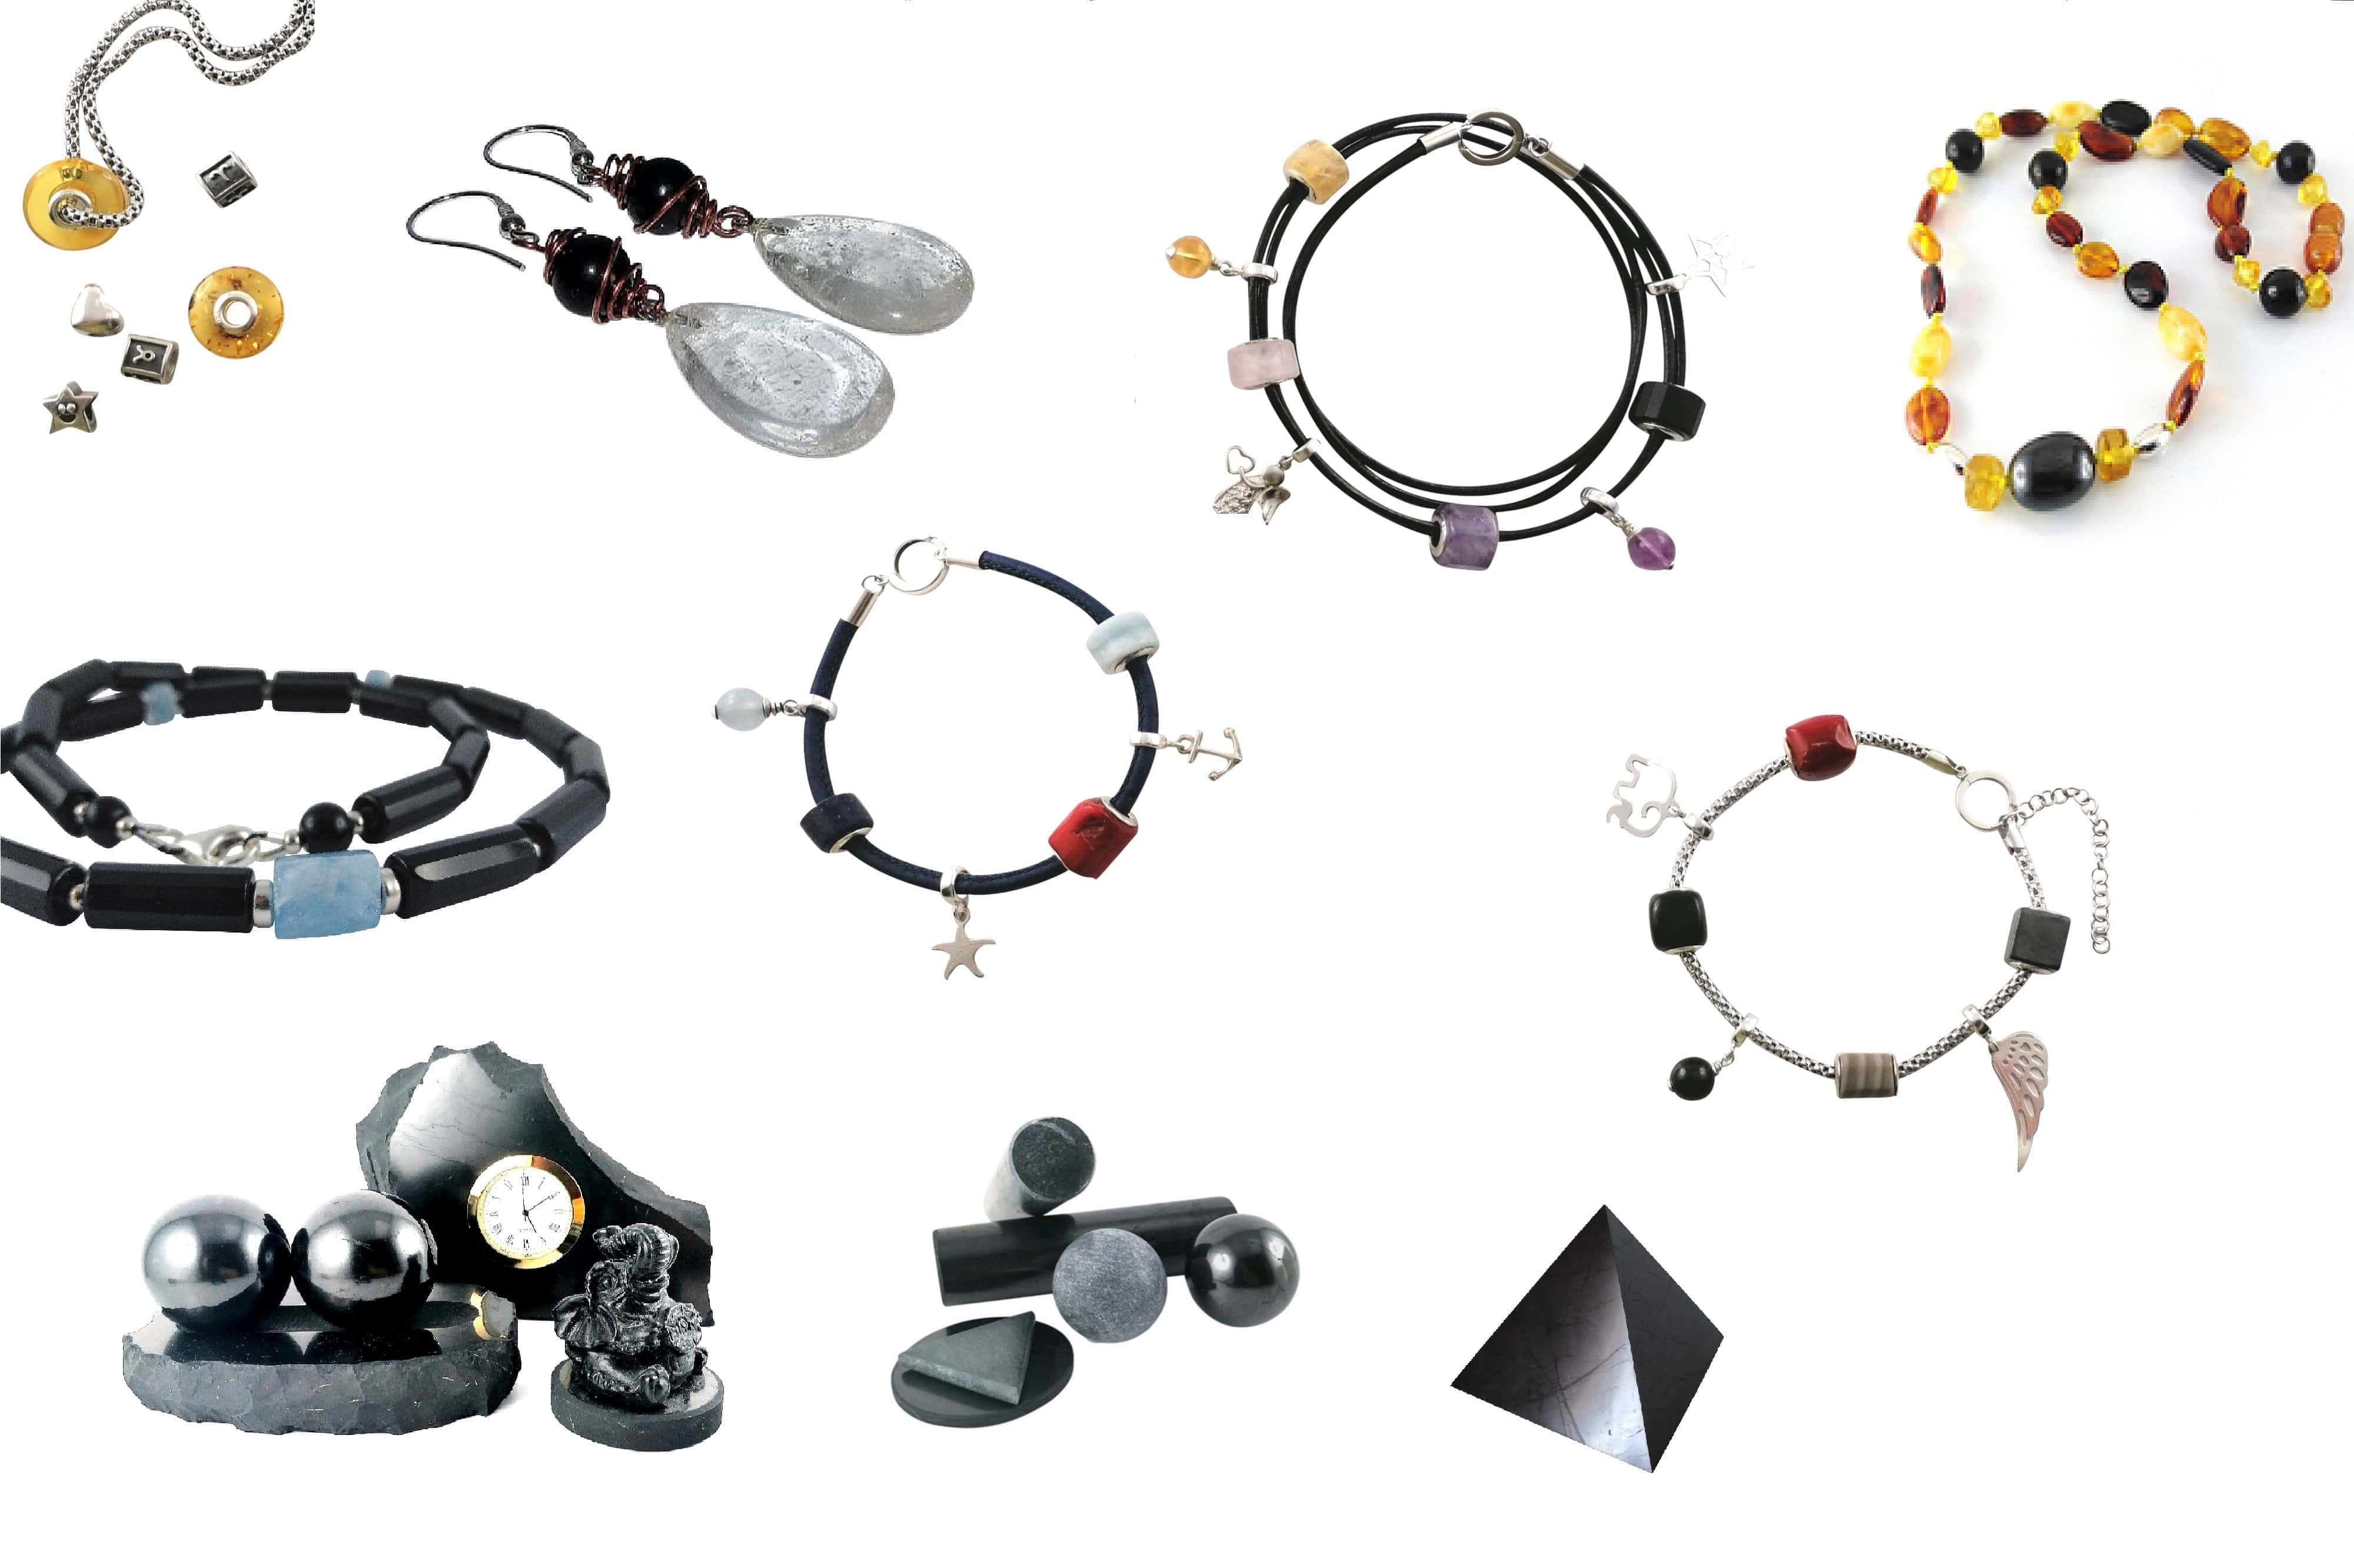 Accessories from shungite rock and beads design to Cure Beads Collection and best amber necklace for baby